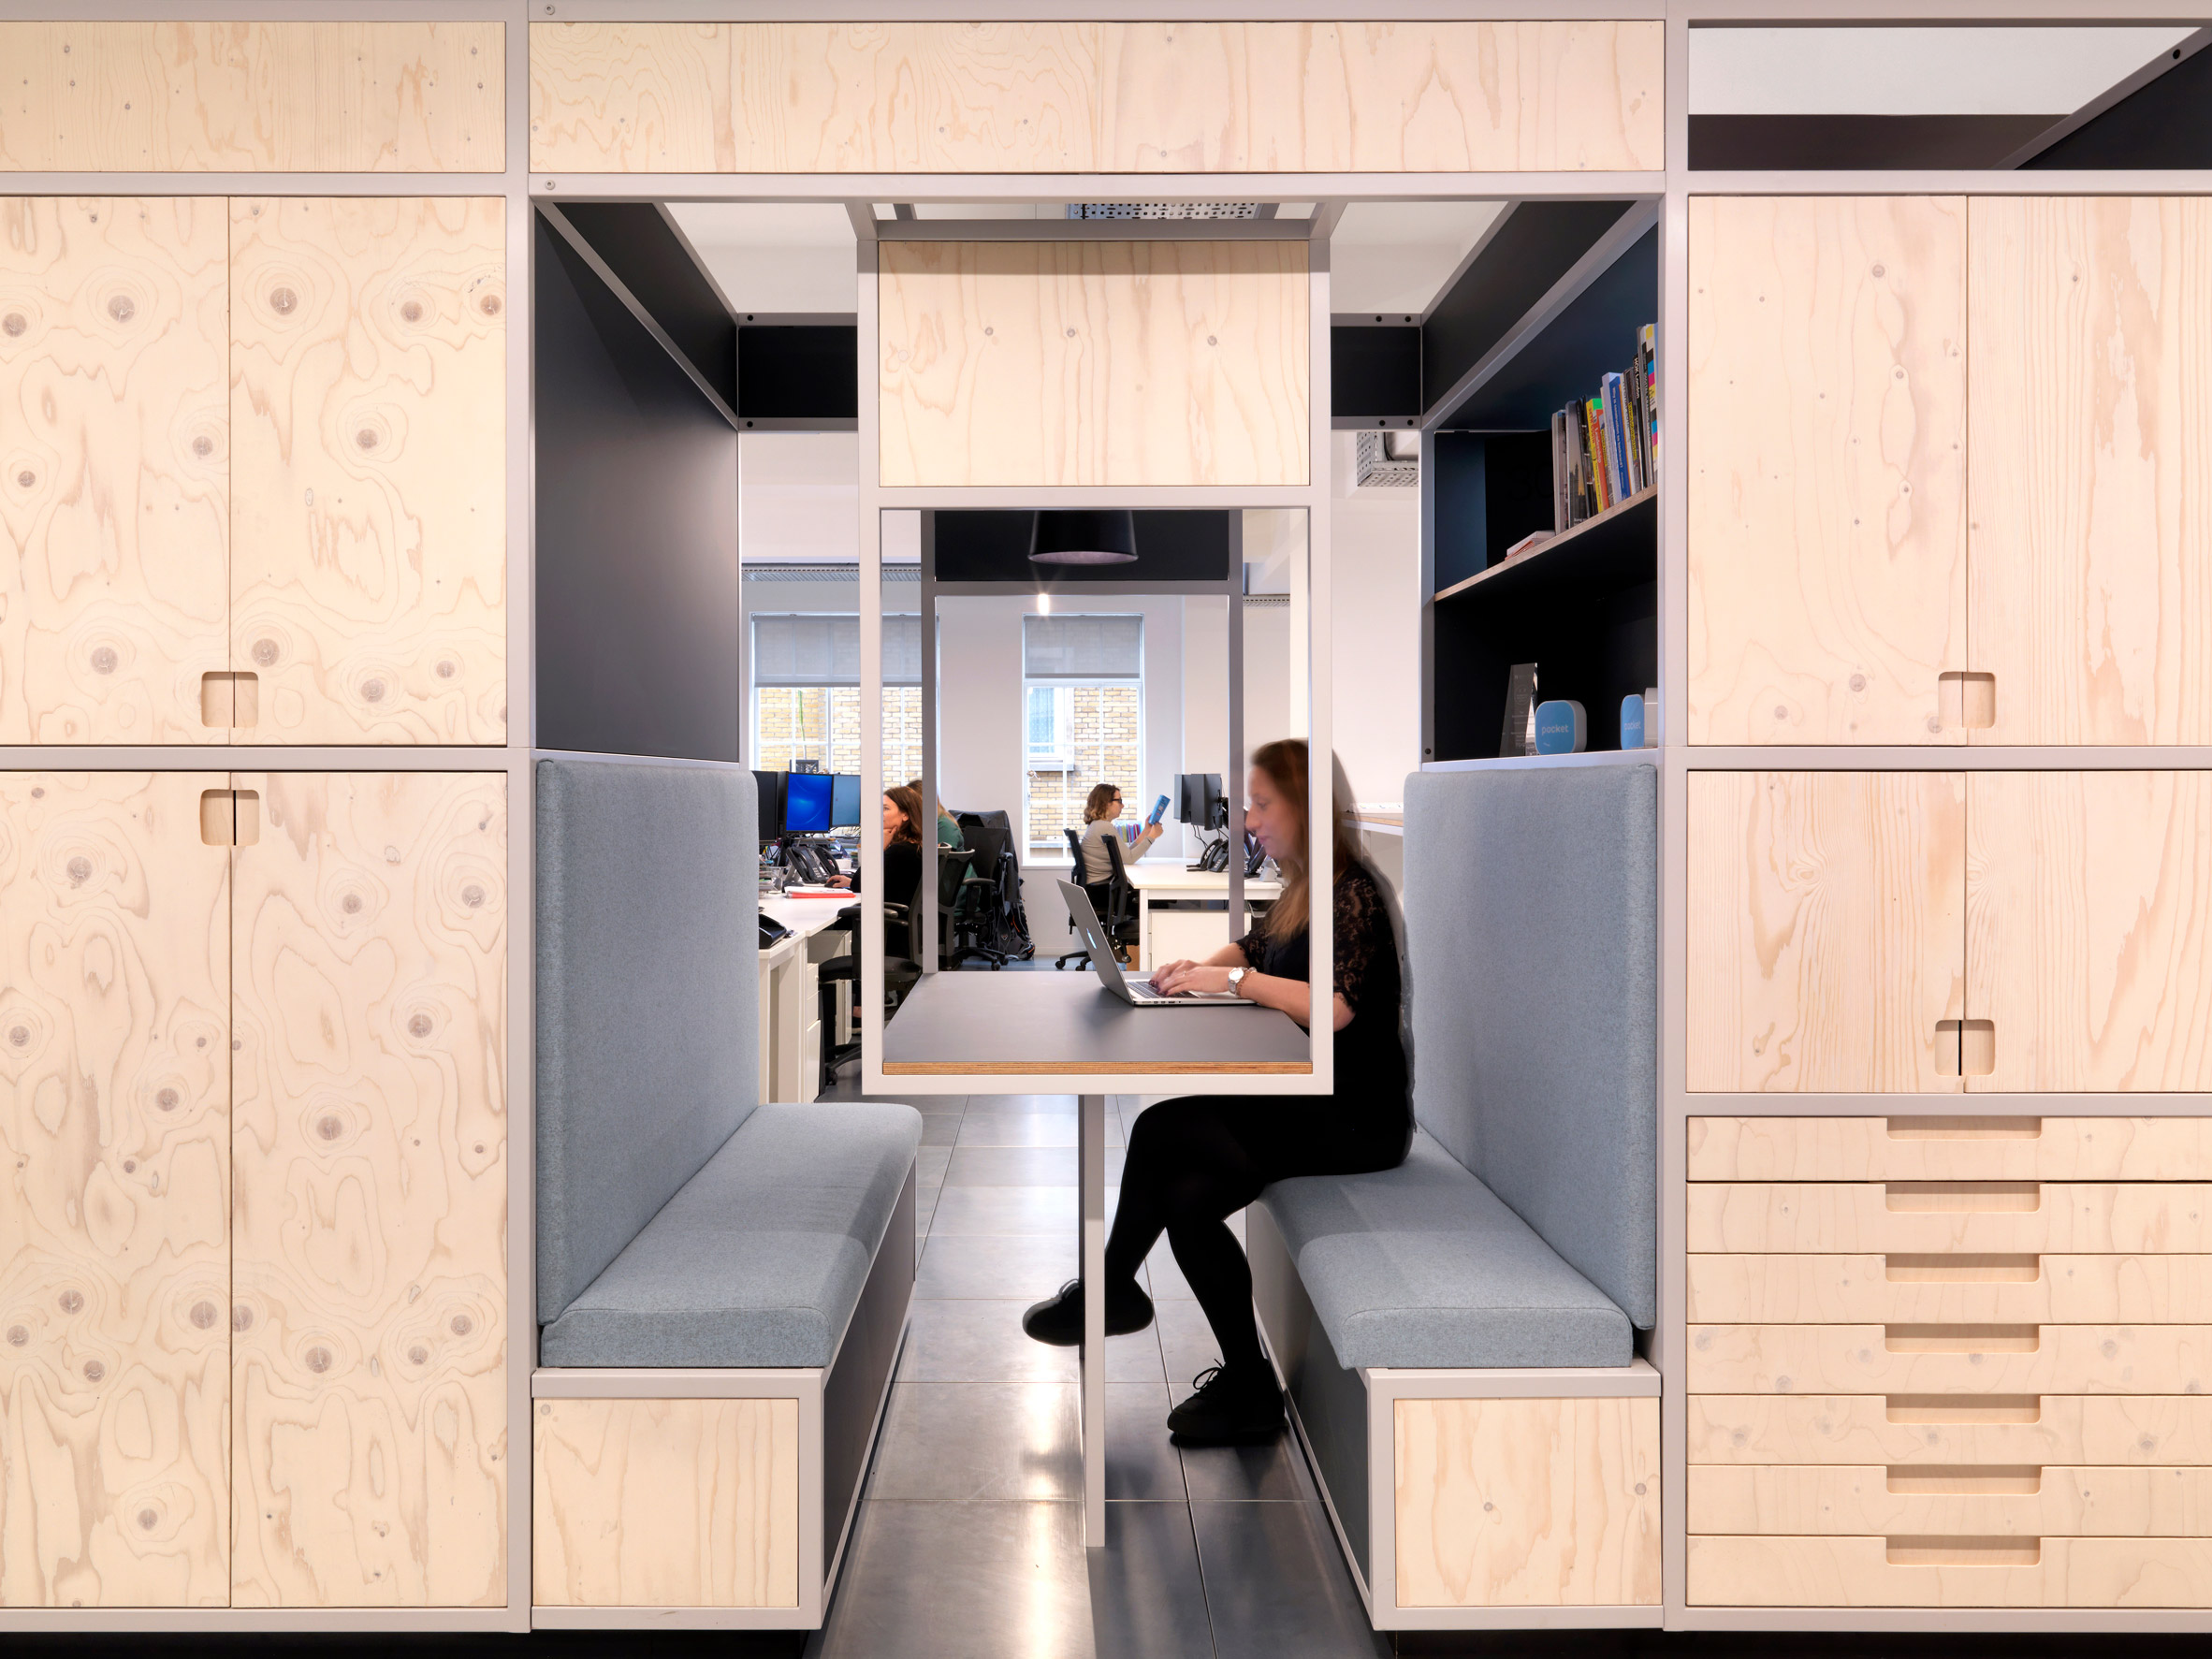 Interiors of Pocket Living office, designed by Threefold Architects